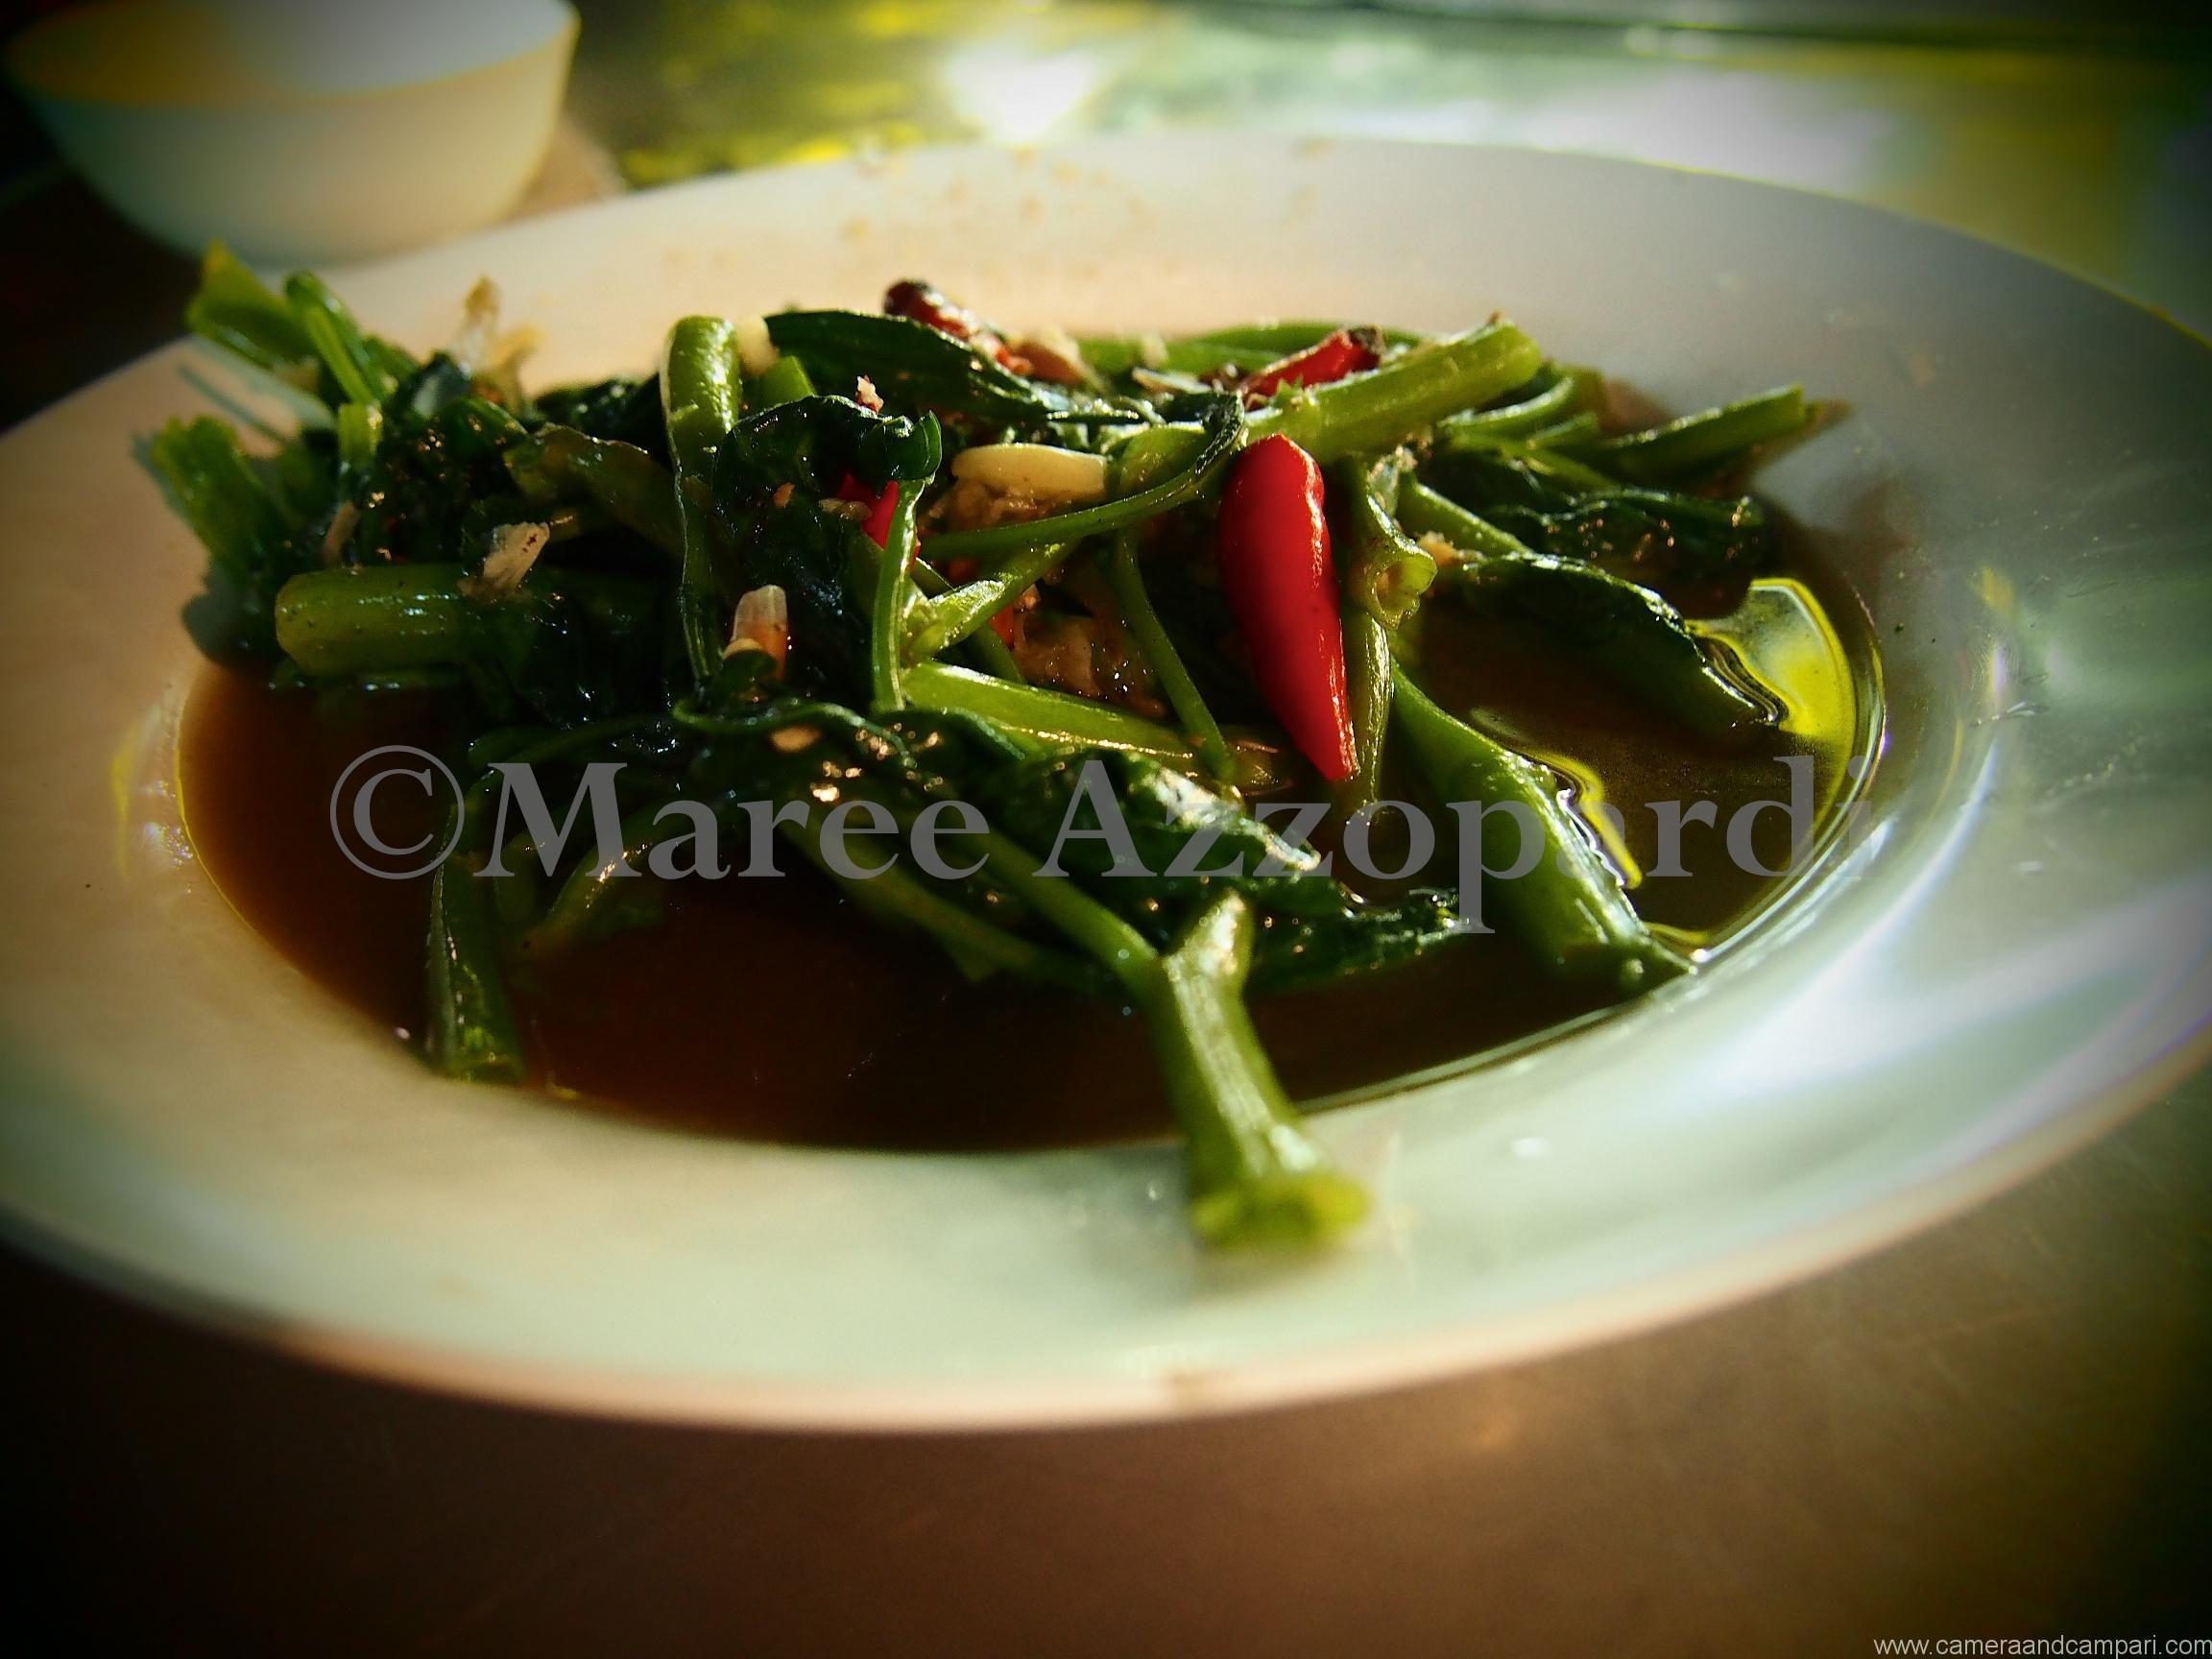 A plate of chilli fried morning glory (water spinach).